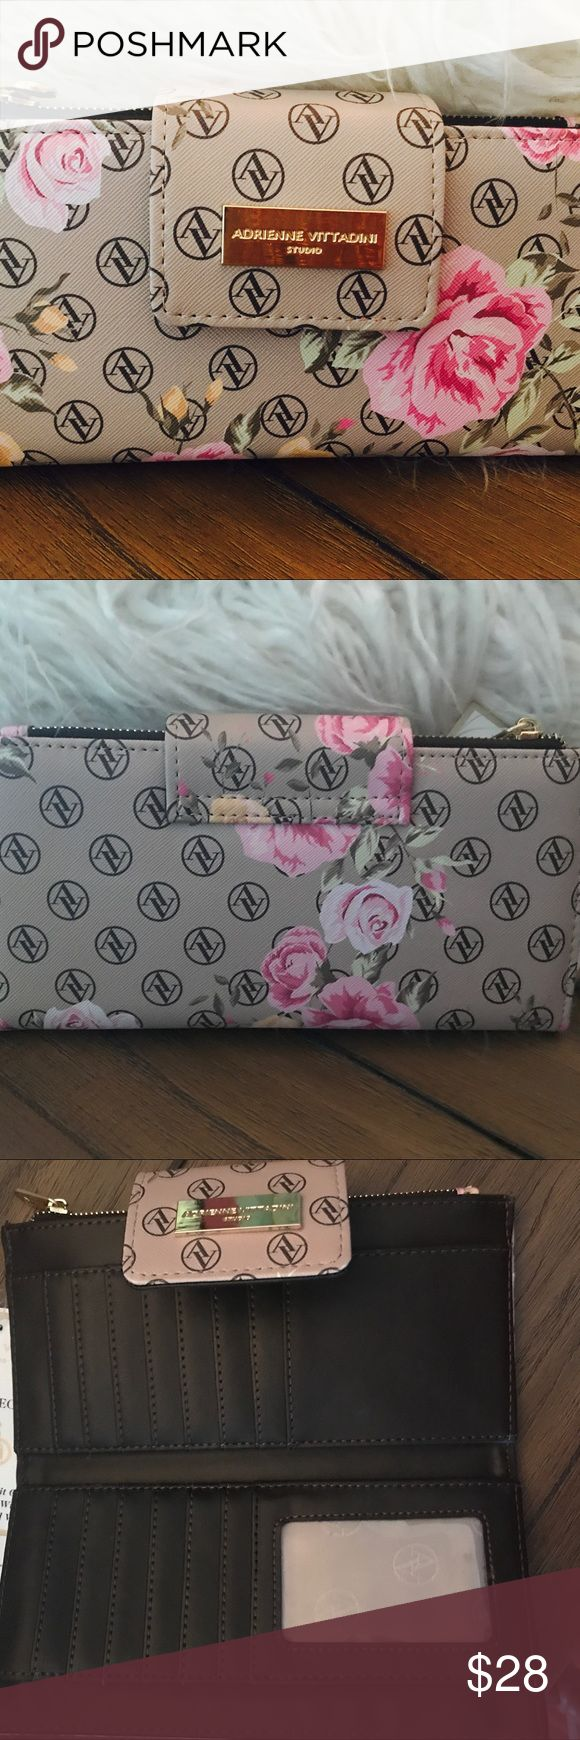 Adrienne Vittadini RDID Lined Security Wallet Gorgeous AND Safe!!! You will love taking this beautiful wallet out of your purse! Gorgeous Adrienne Vittadini Floral Wallet and RFID Lined for Identity Theft Protection. Everyone NEEDS one of these in today's times!. Will ship within 24 hours💗 Adrienne Vittadini Bags Wallets